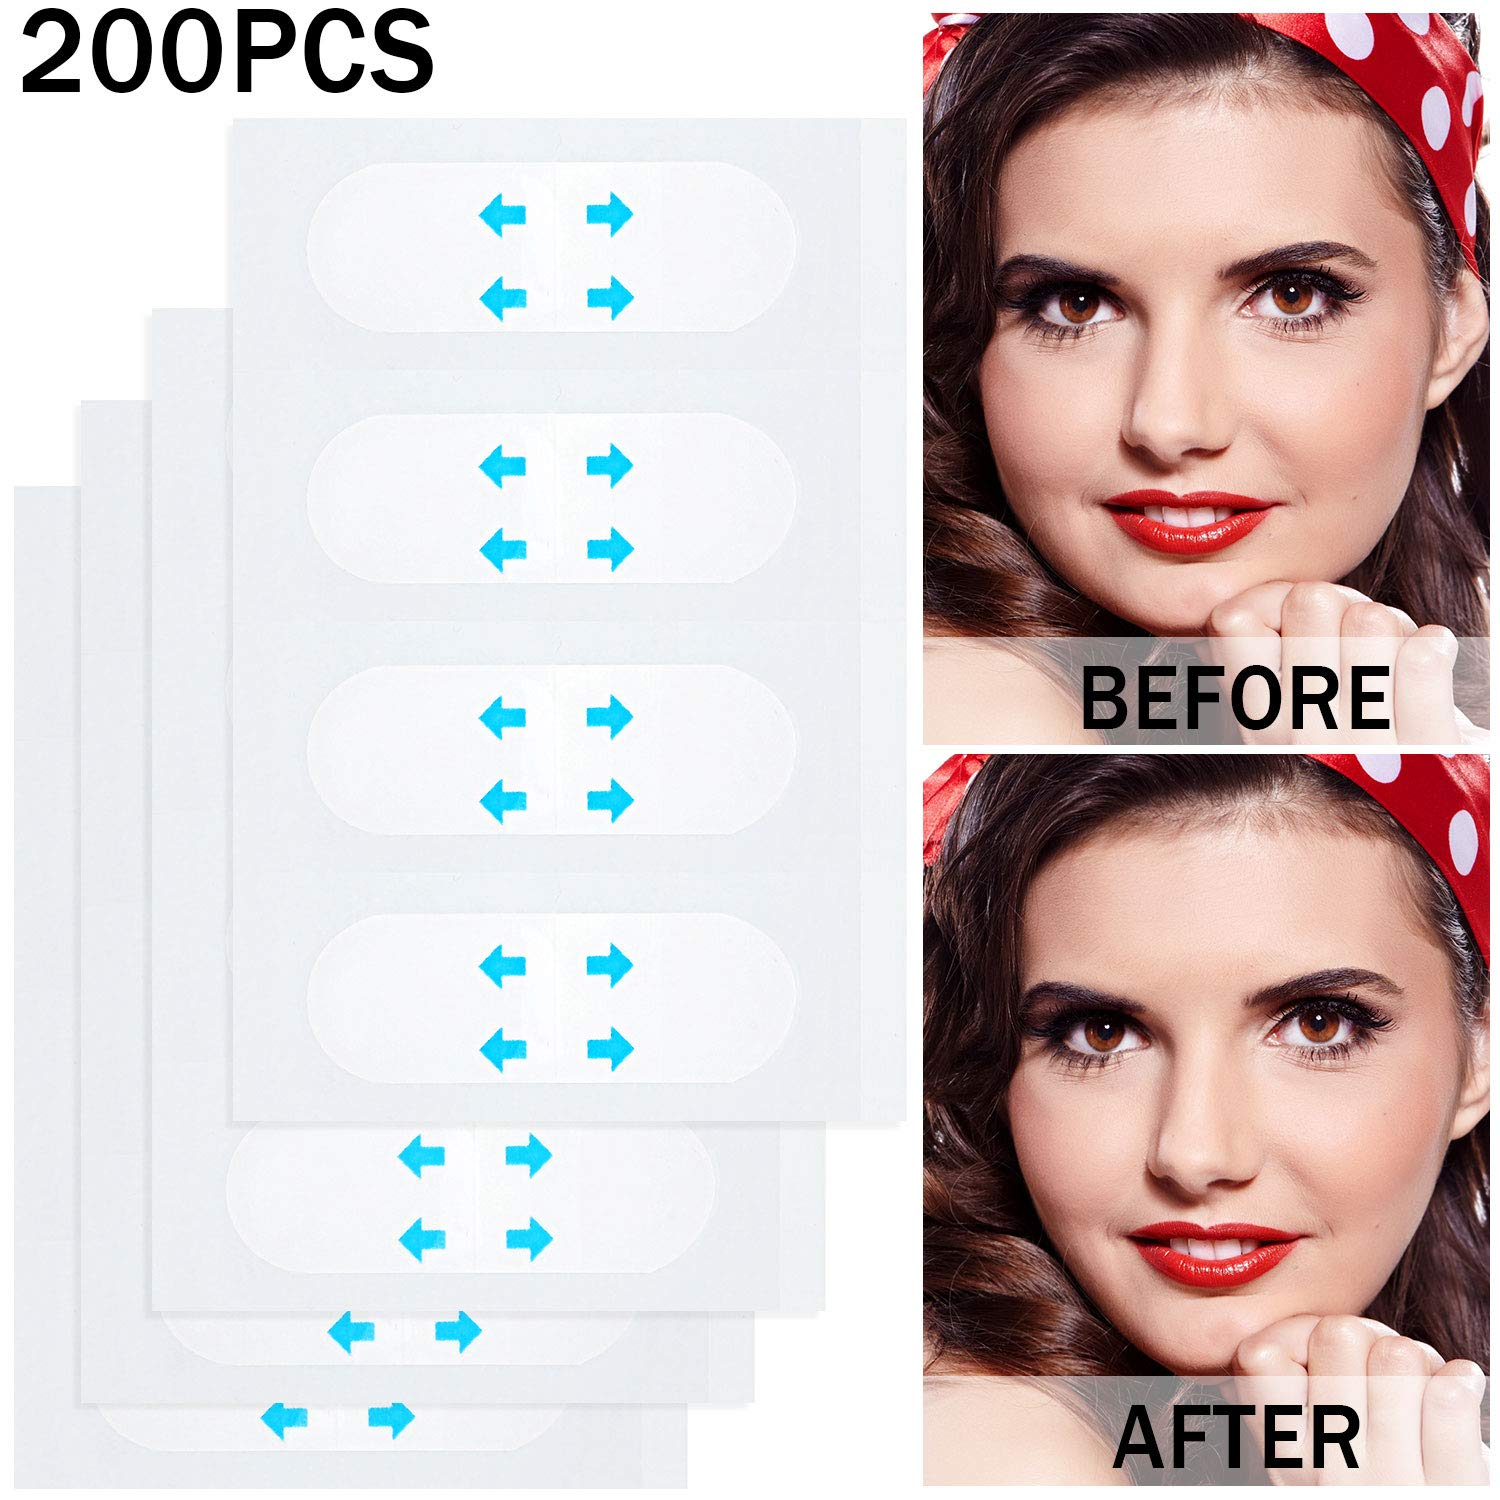 200 Pieces Face Lifting Sticker Face Lift Tape Invisible Thin Face Stickers V-Shape Face Lift Tape Make-up Face Lift Tools for Face